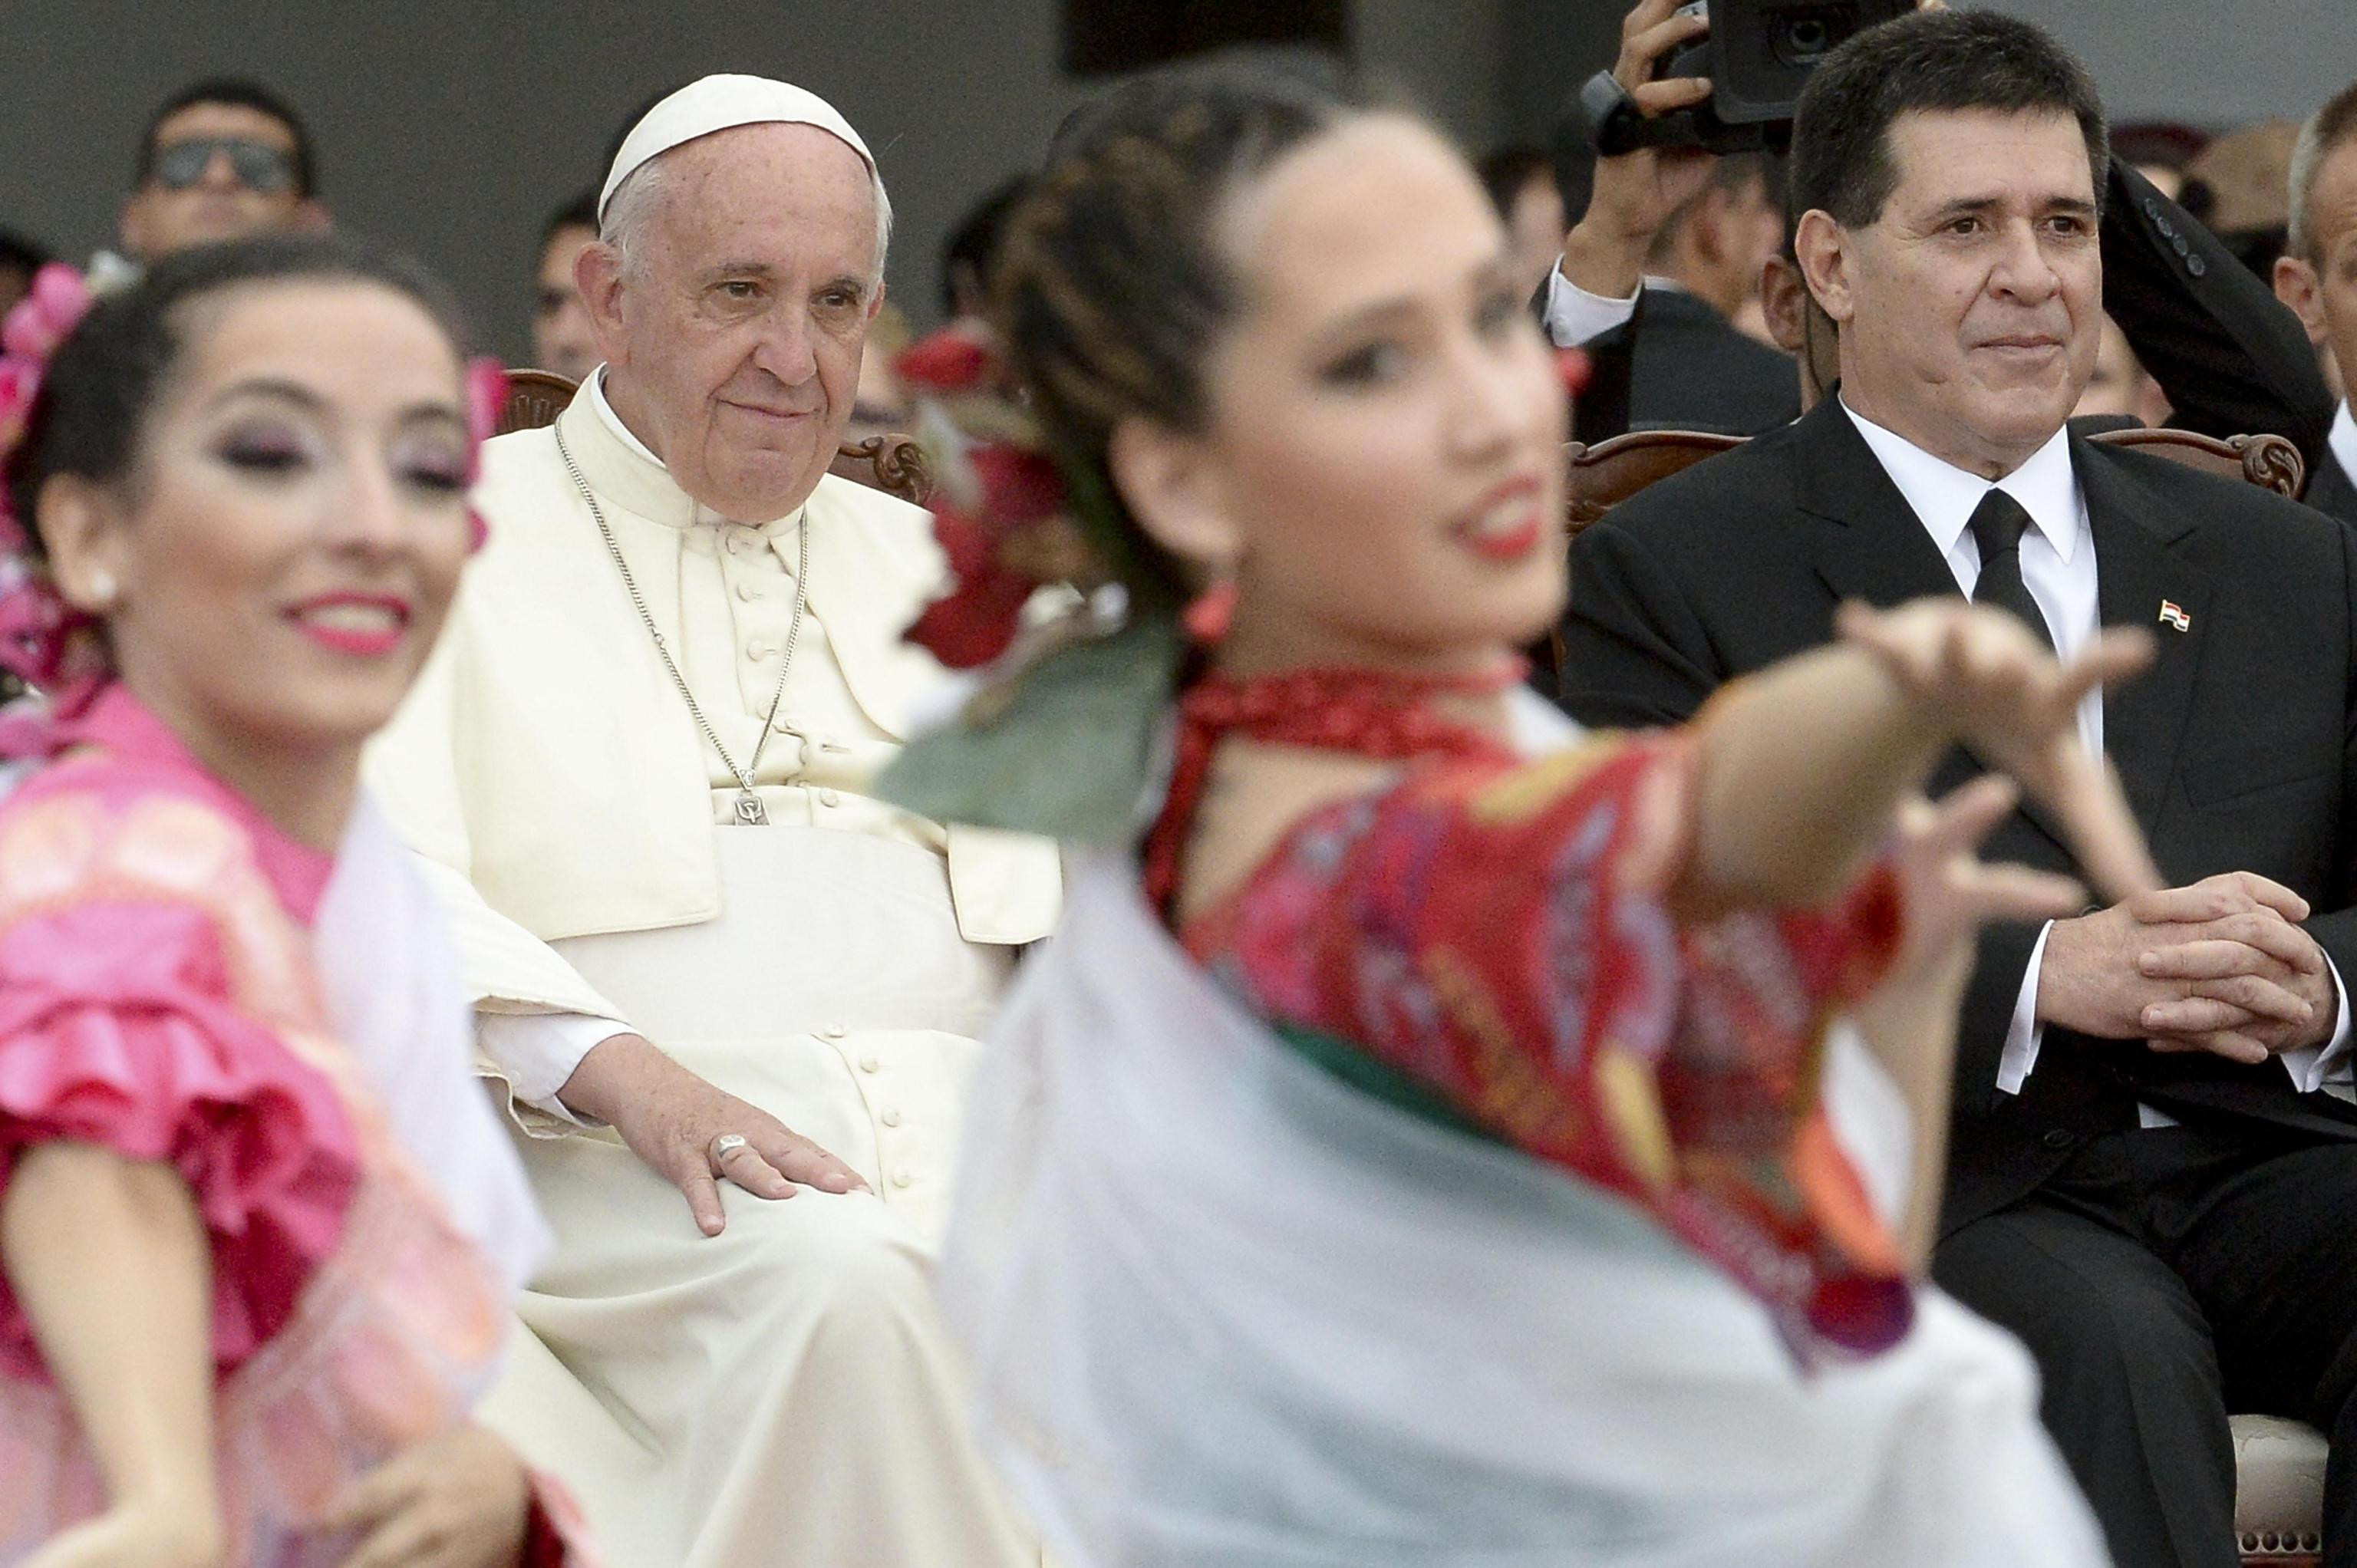 Pope Francis and Paraguay's President Horacio Cartes attend welcome ceremony at the Silvio Pettirossi International airport in Asuncion